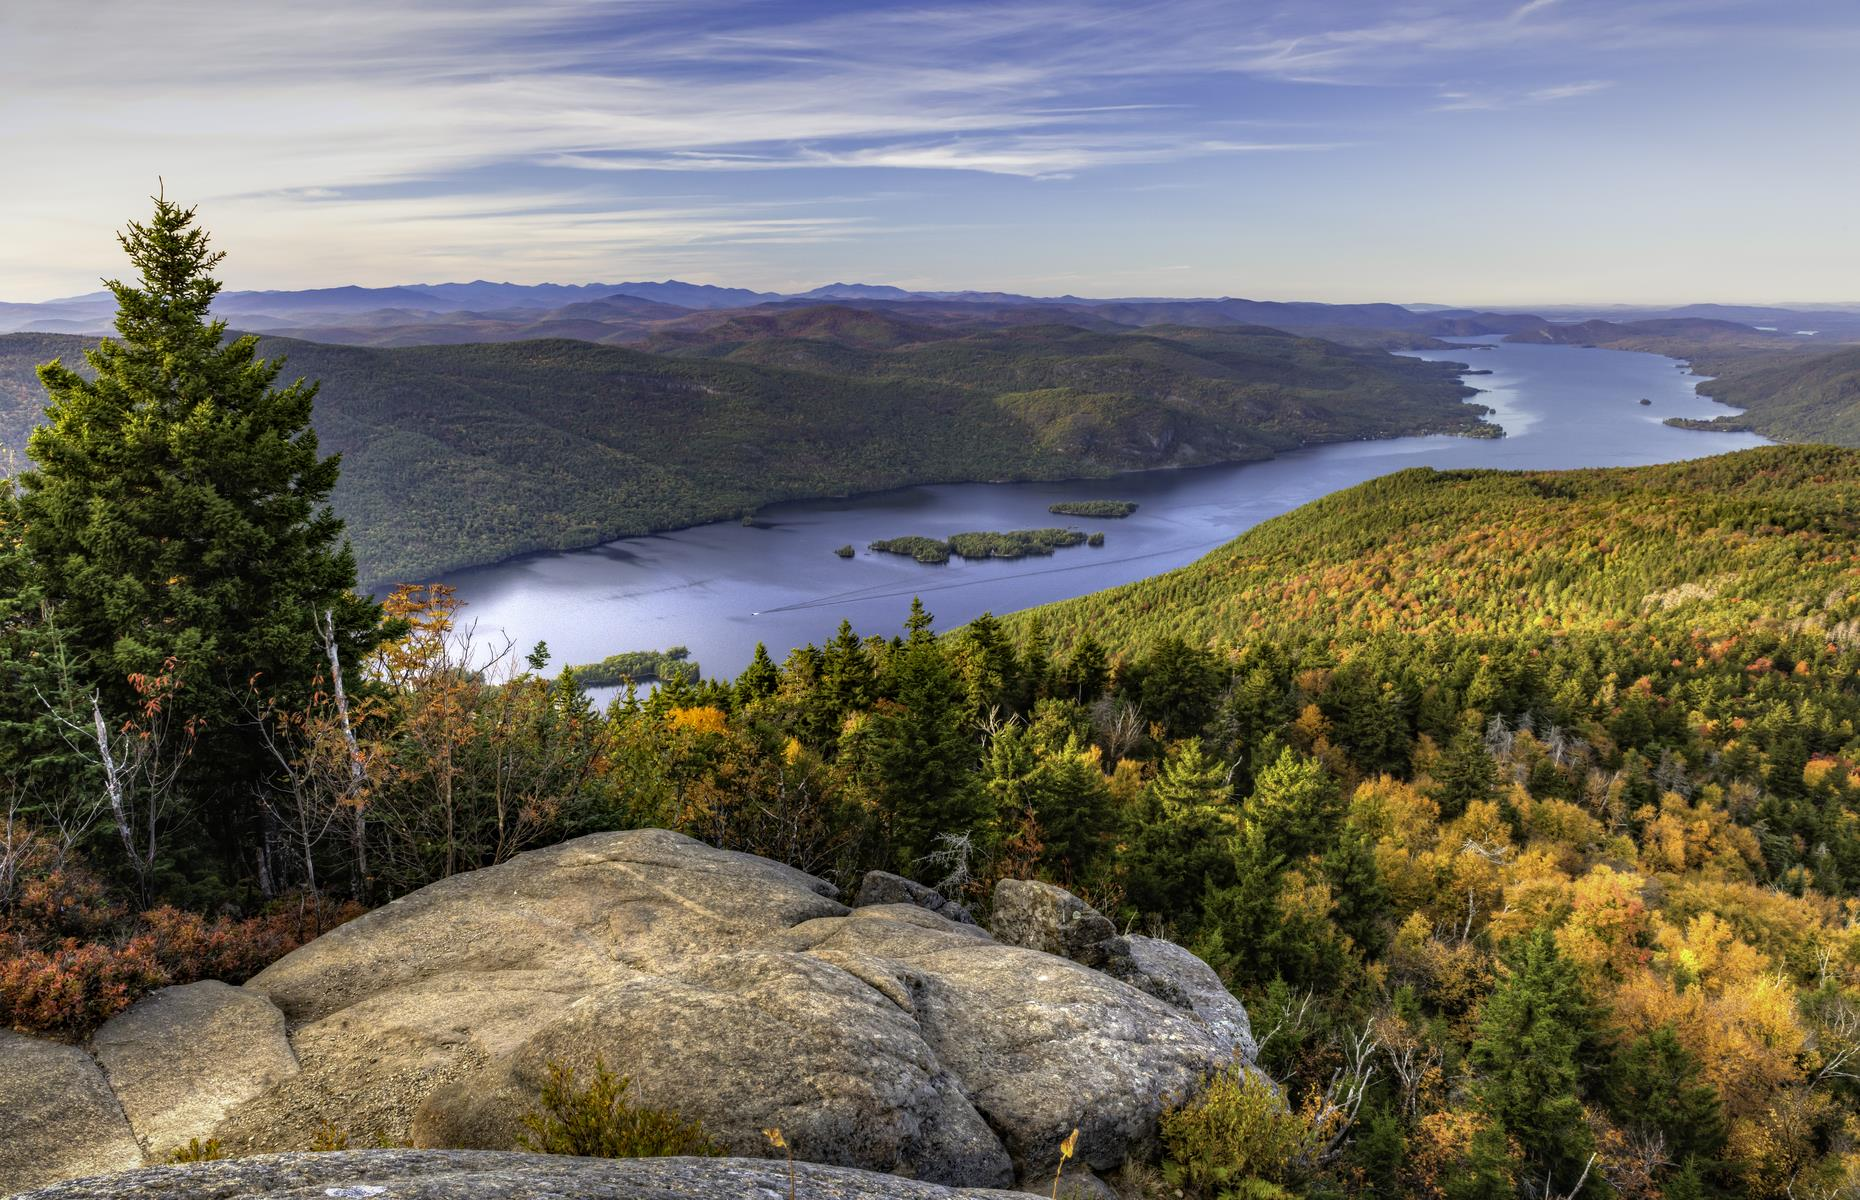 "Slide 20 of 31: Lake George is nicknamed the Queen of American Lakes and Thomas Jefferson, the USA's third president, described it as ""the most beautiful water I ever saw"". As this photo proves, the natural wonder, which glistens at the base of the Adirondack Mountains, lives up to the hype."